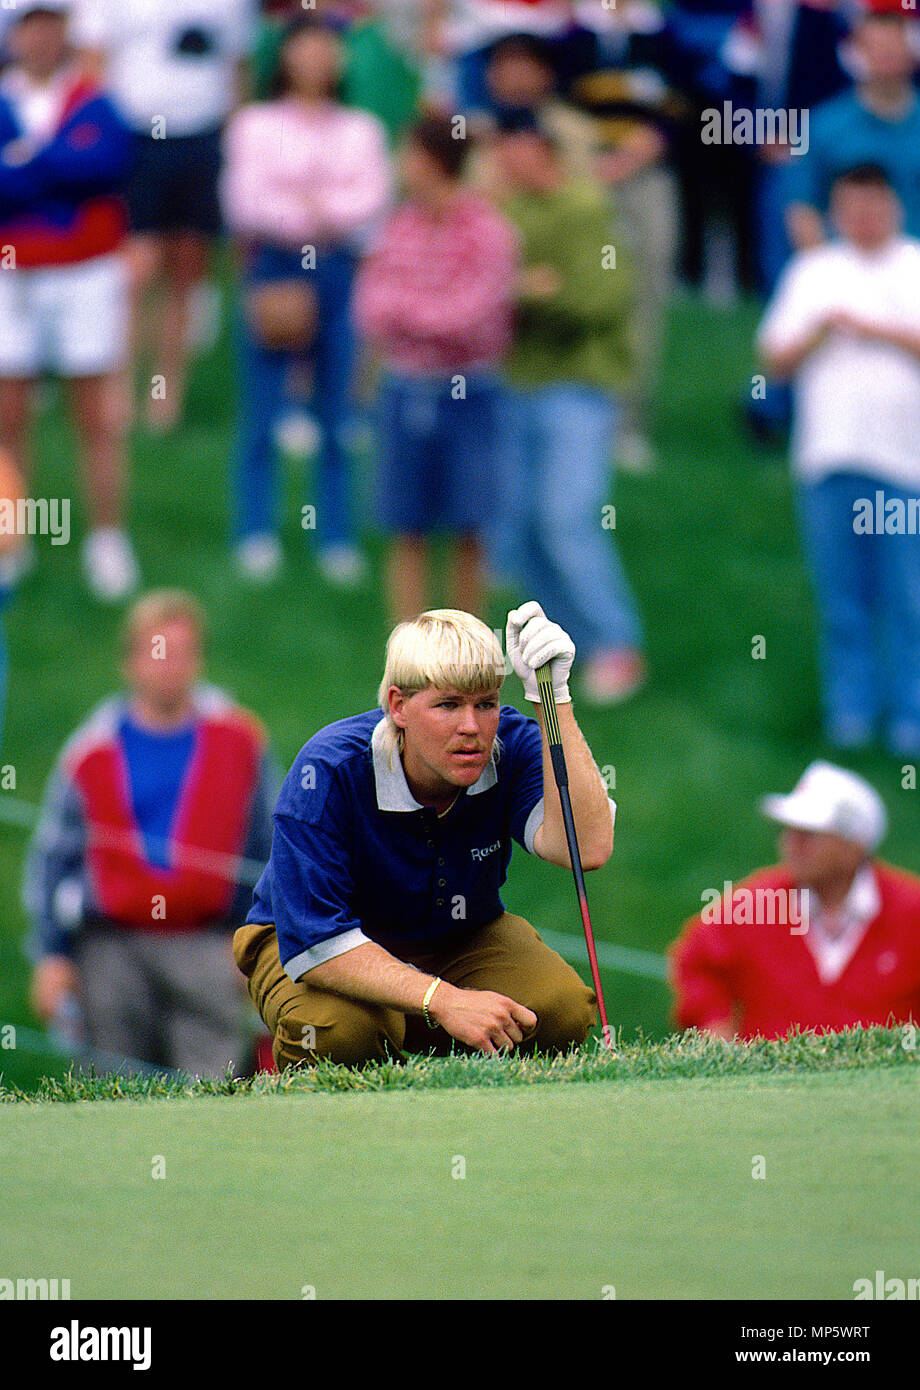 Potomac. Maryland, USA, May 28, 1992  John Daly plays during the Kemper Open at the TPC at Avenel in Potomac Maryland. Credit: Mark Reinstein/MediaPunch - Stock Image